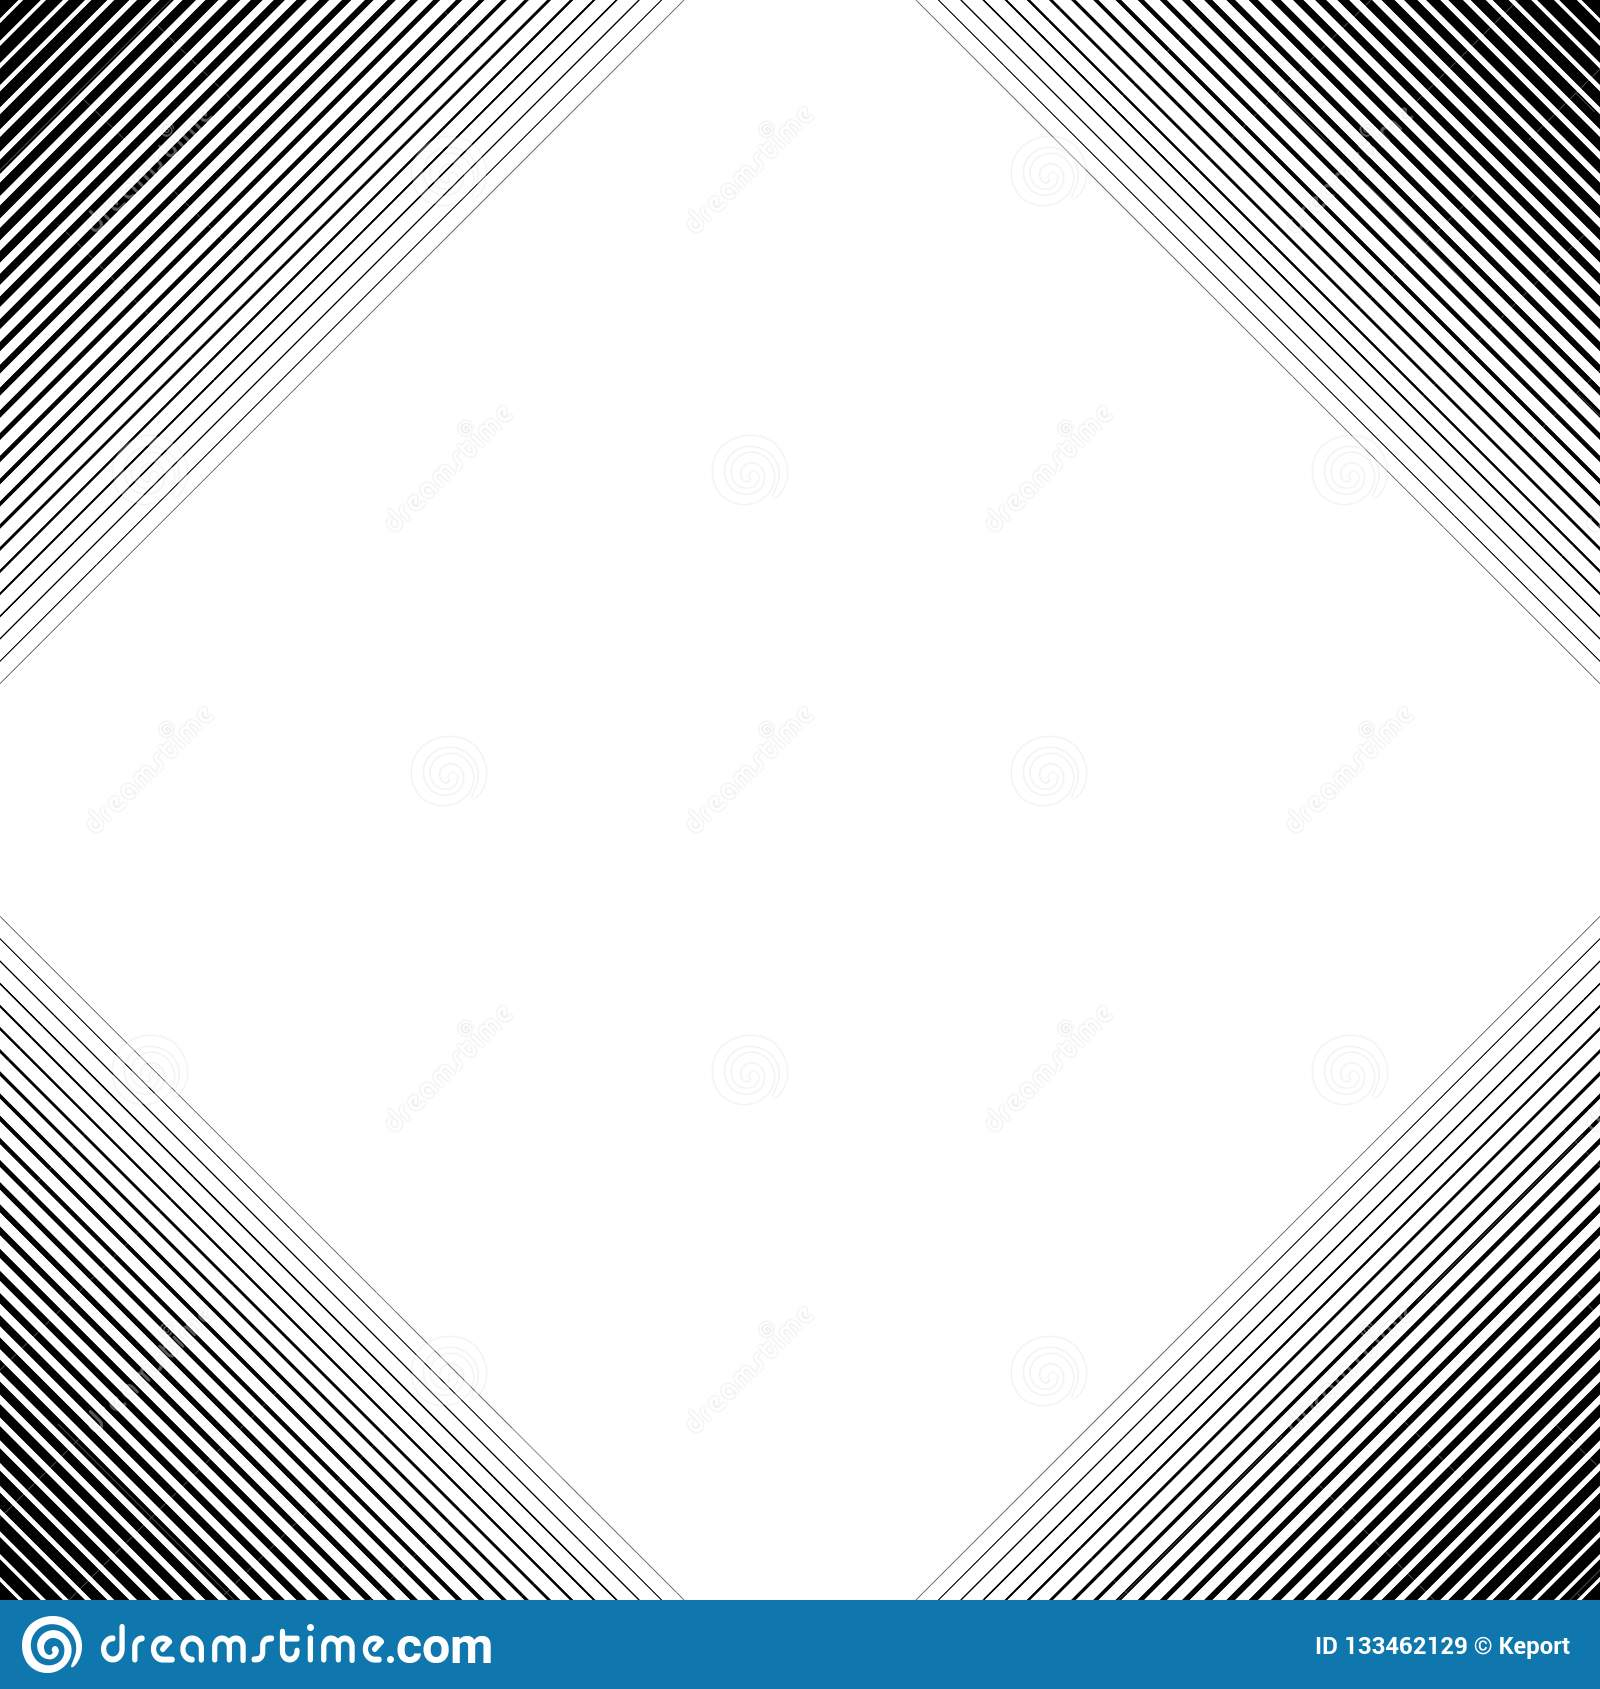 Gradient Frame Made Of Black And White Stripes Stock Illustration